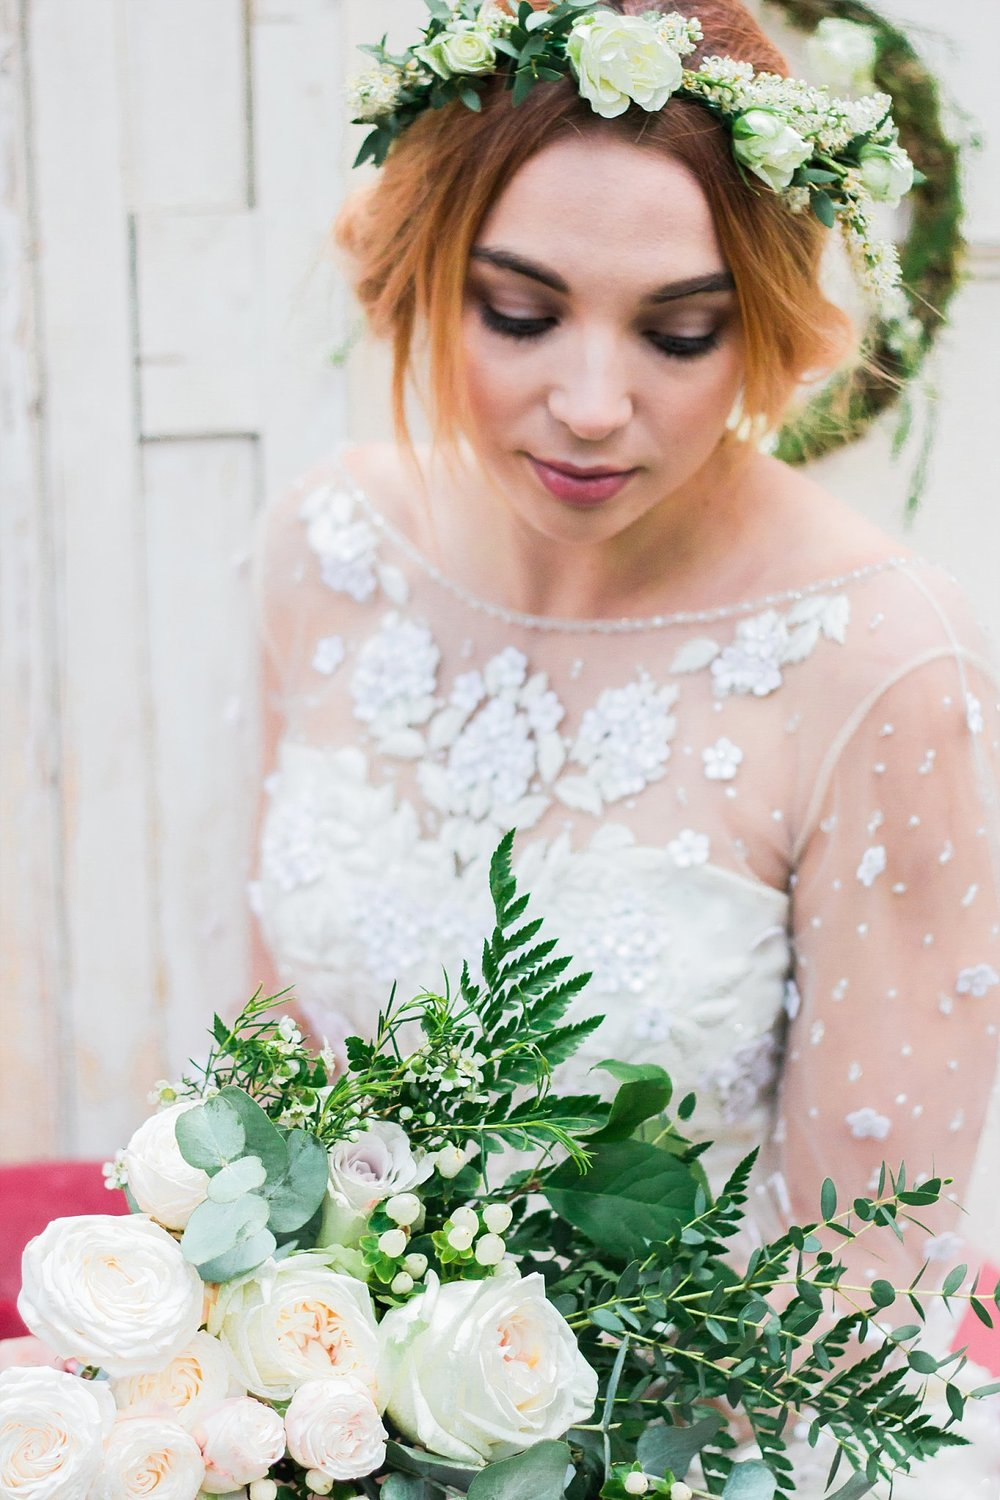 Vintage Amy Wedding Styling-Whimsical Woodland Wedding Inspiration Kent-Vintage Bride-Neutral Flowers